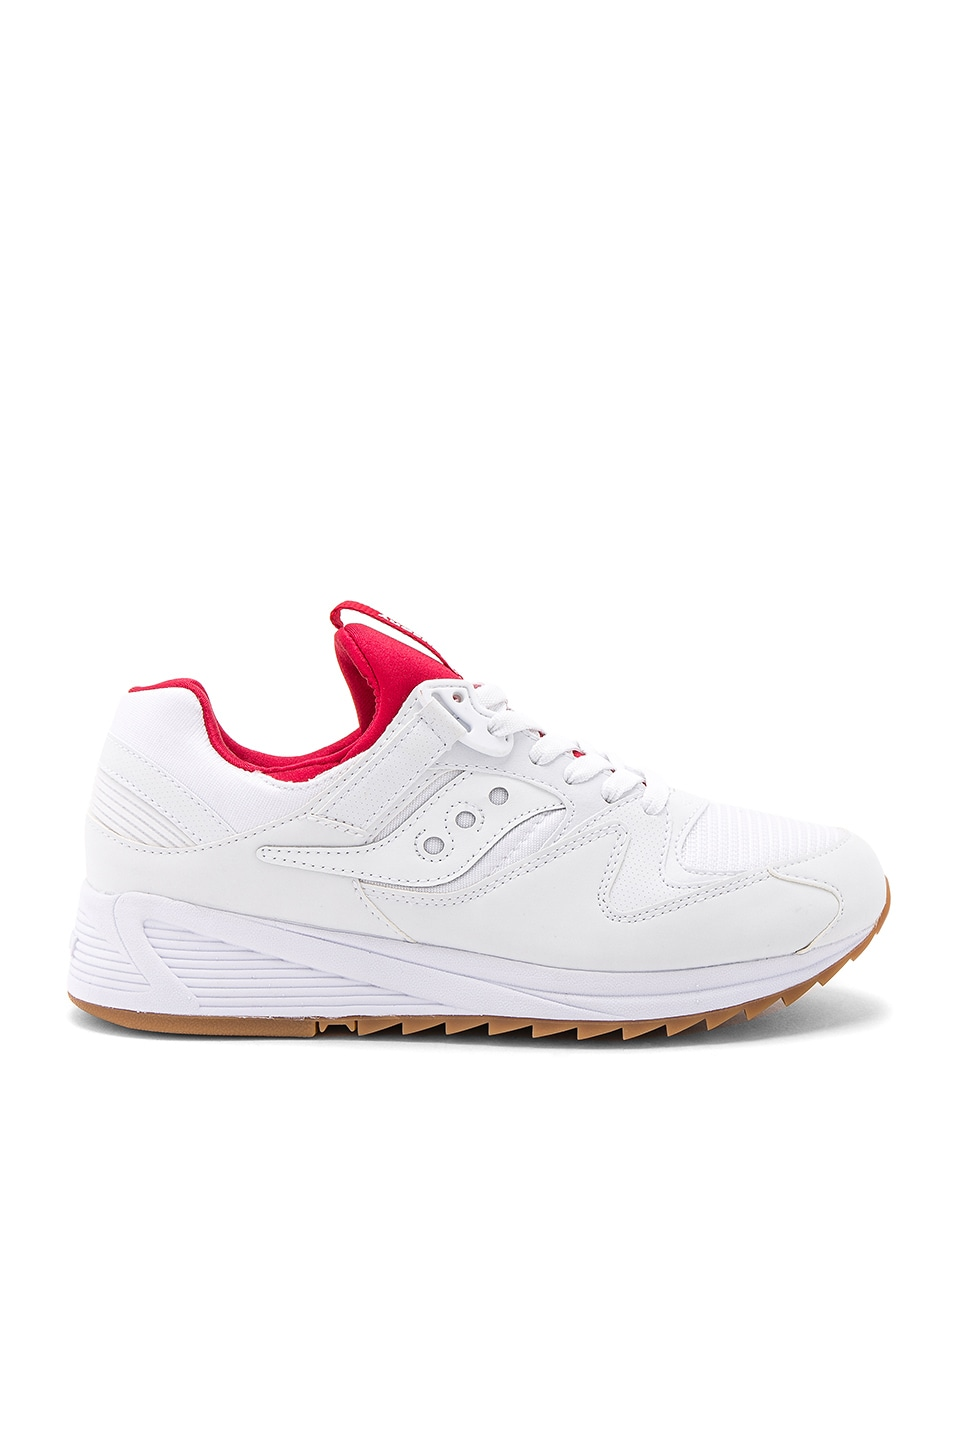 Grid 8500 by Saucony